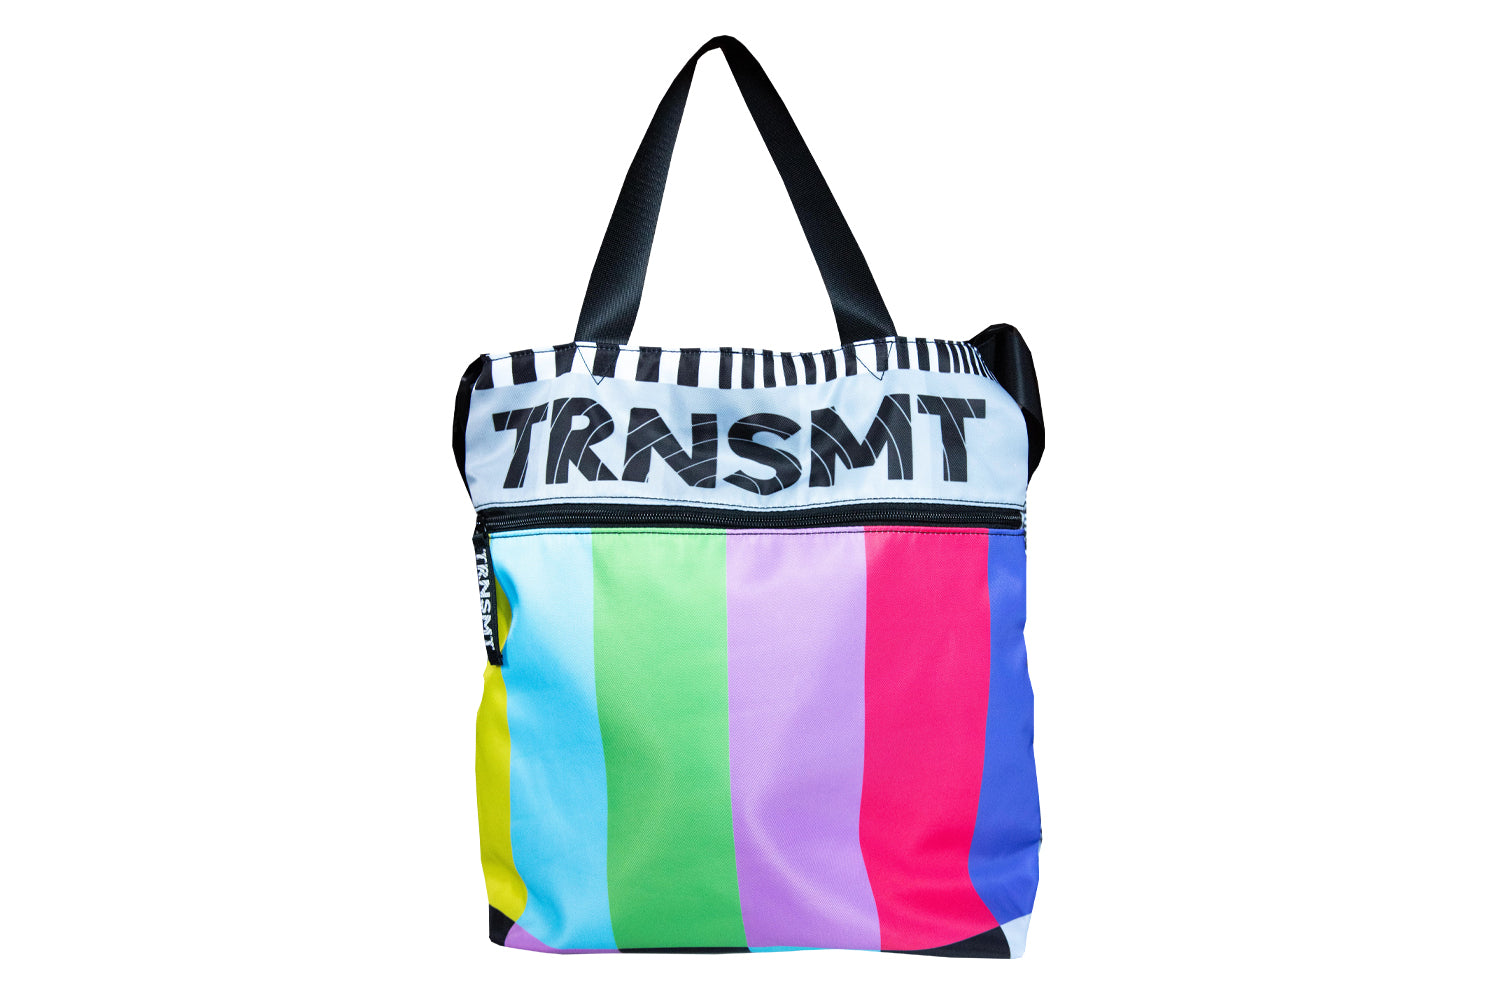 Double Panel Tote Bag